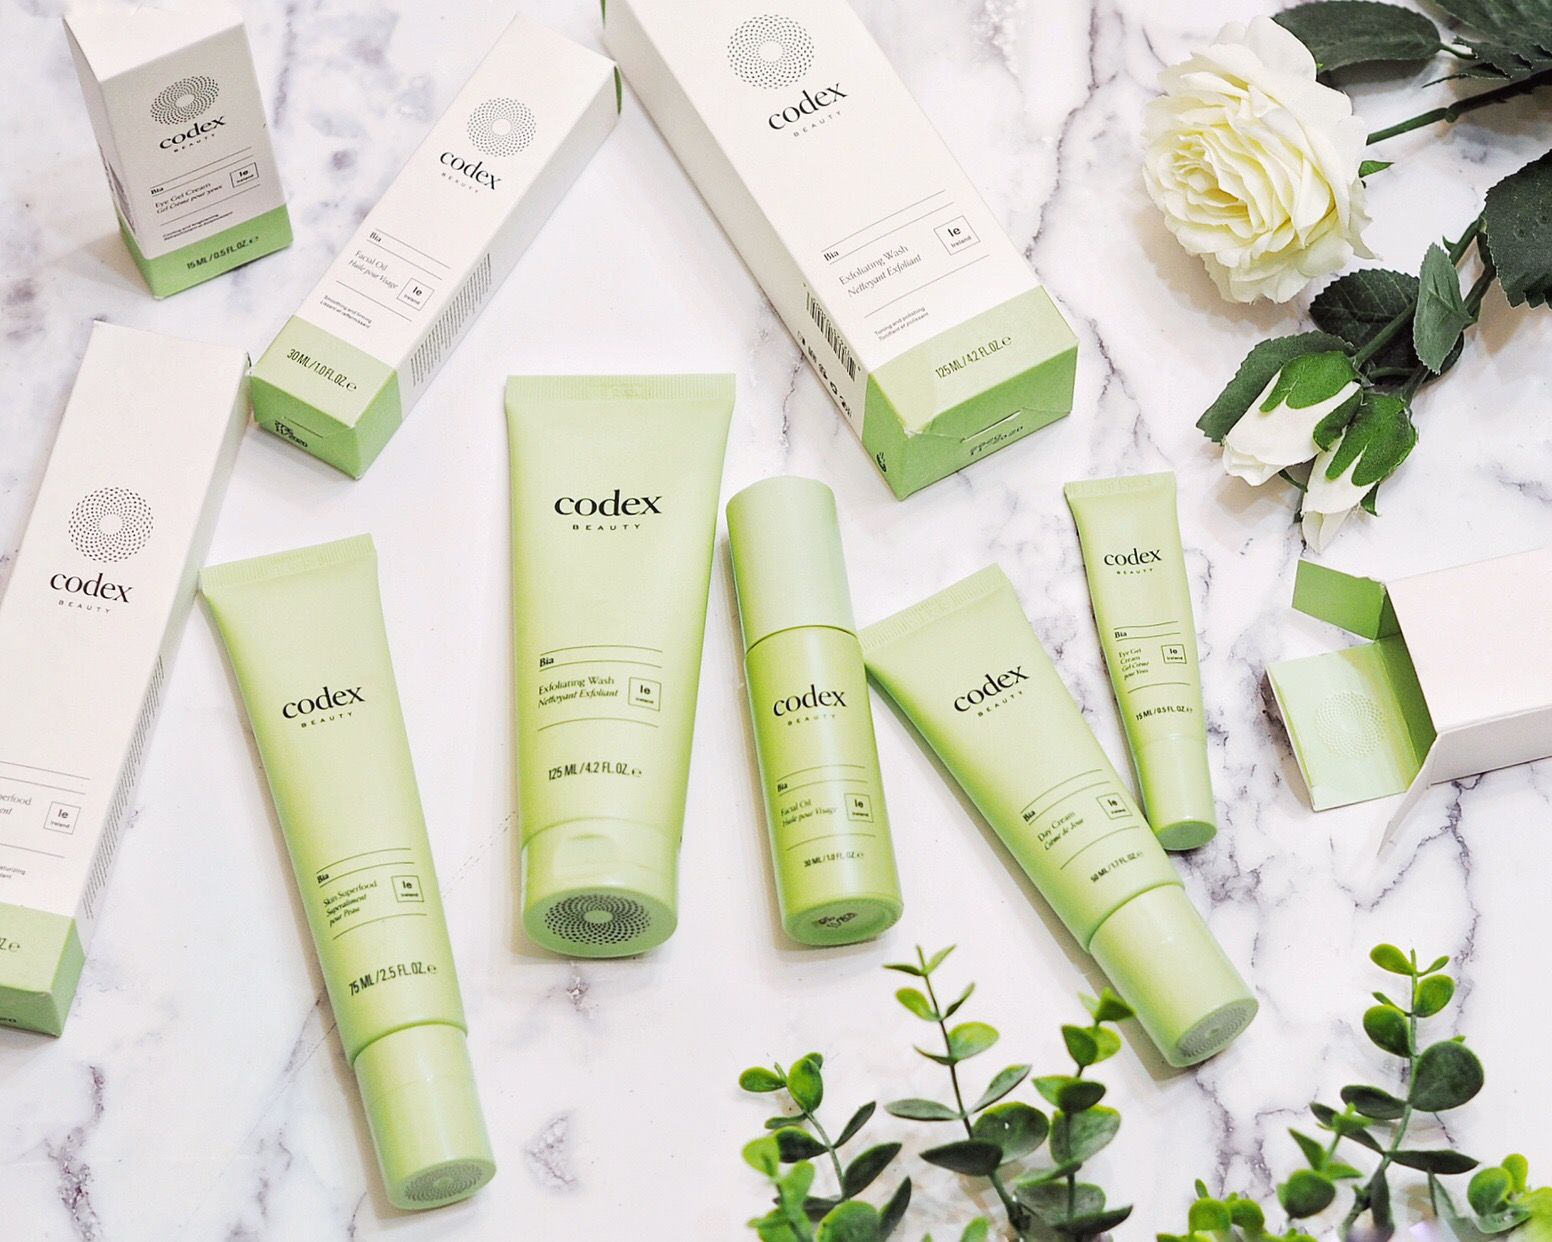 codex skin care